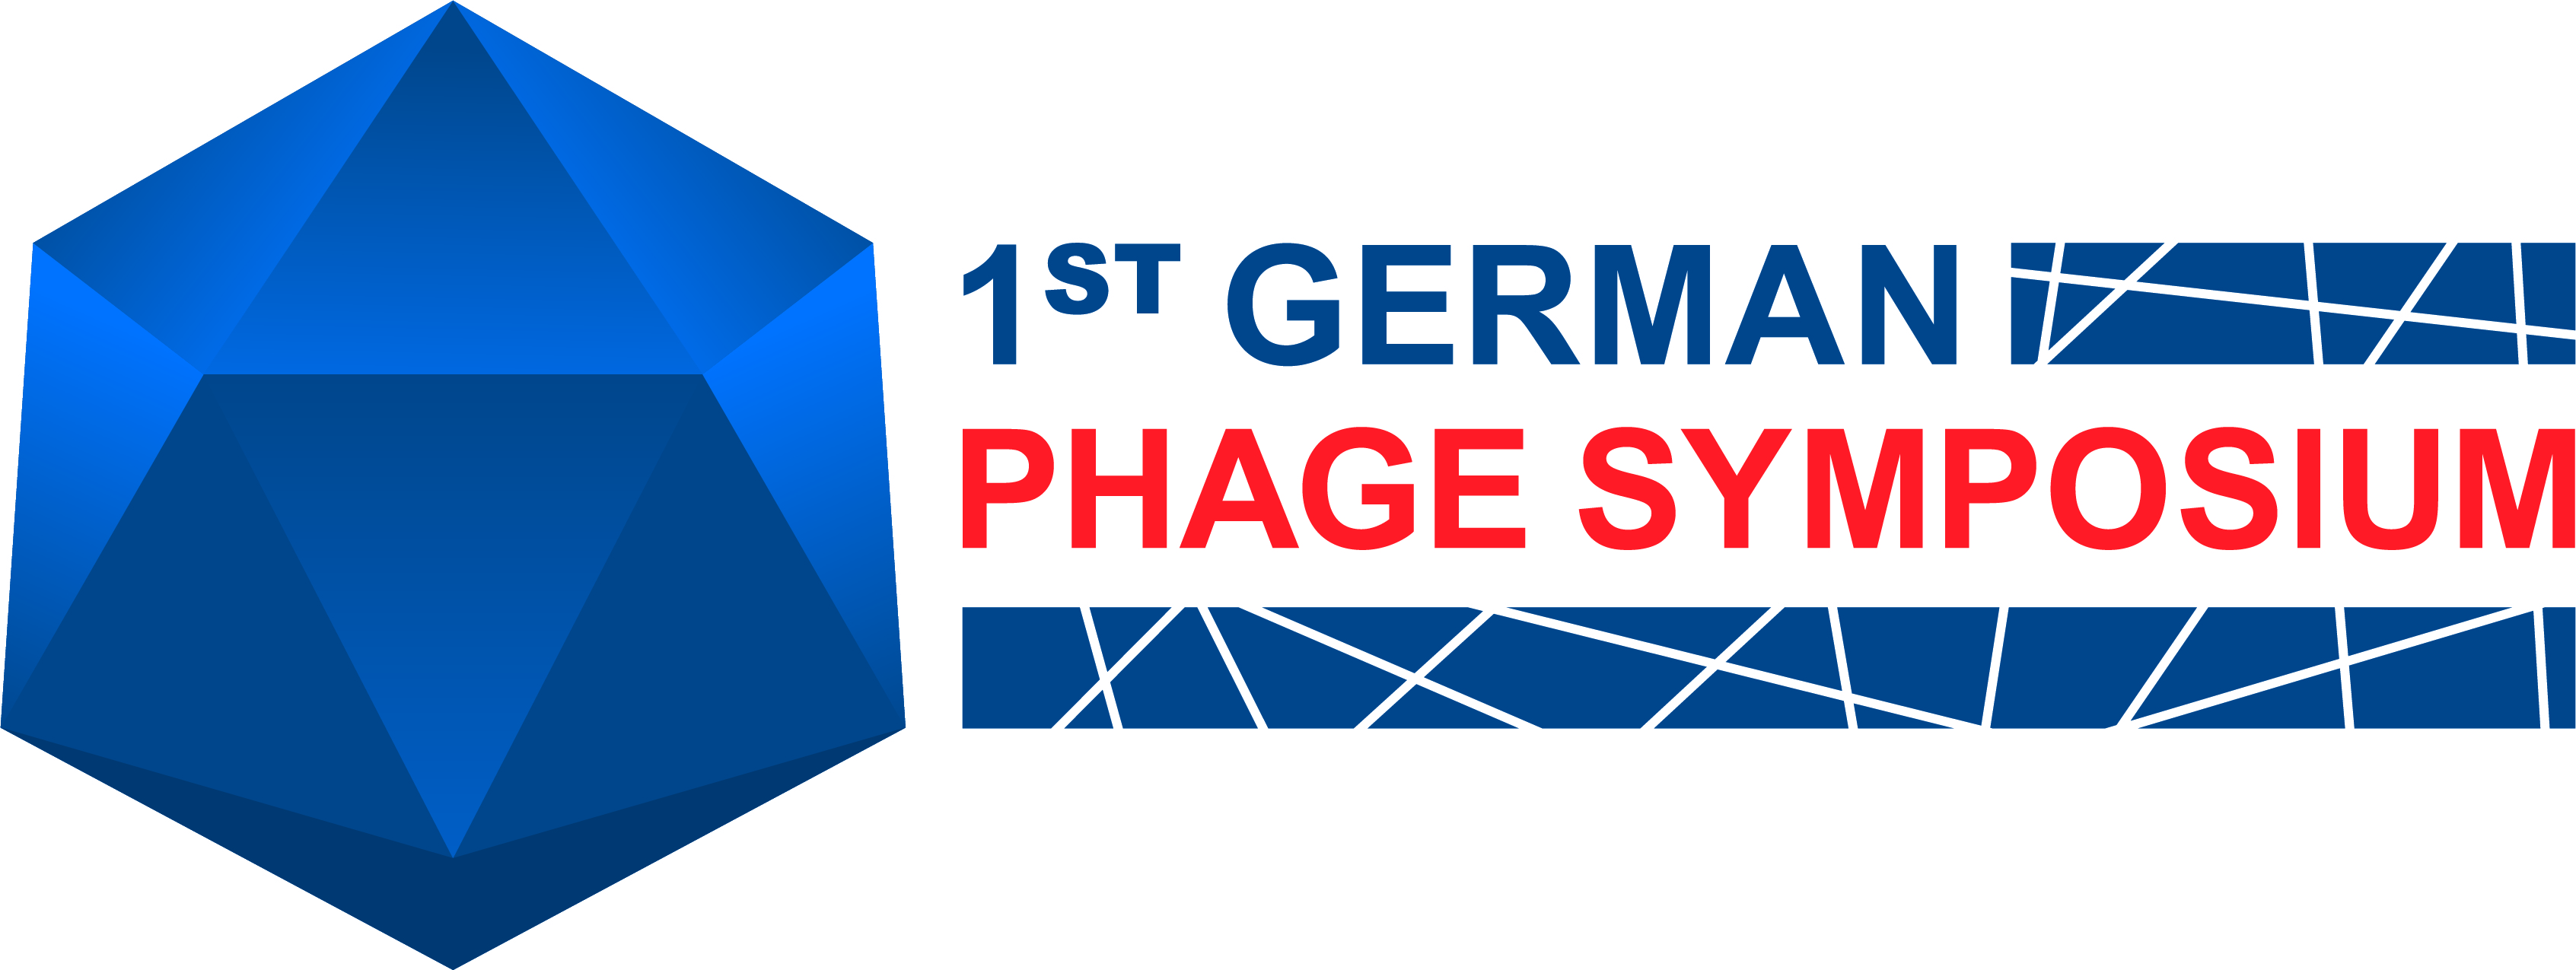 1st German Phage Symposium